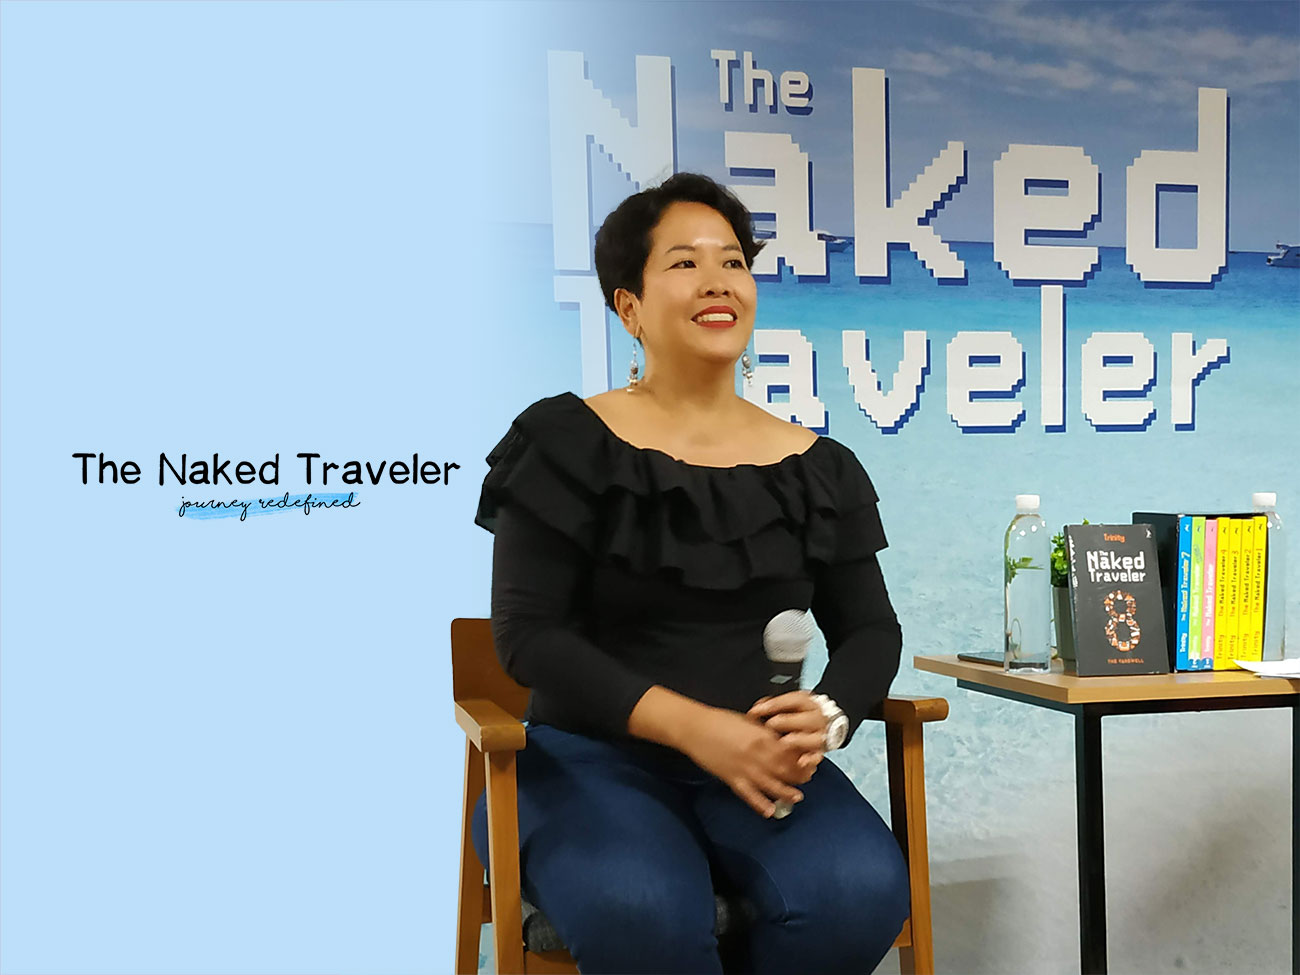 The Naked Traveler: Journey Redefined